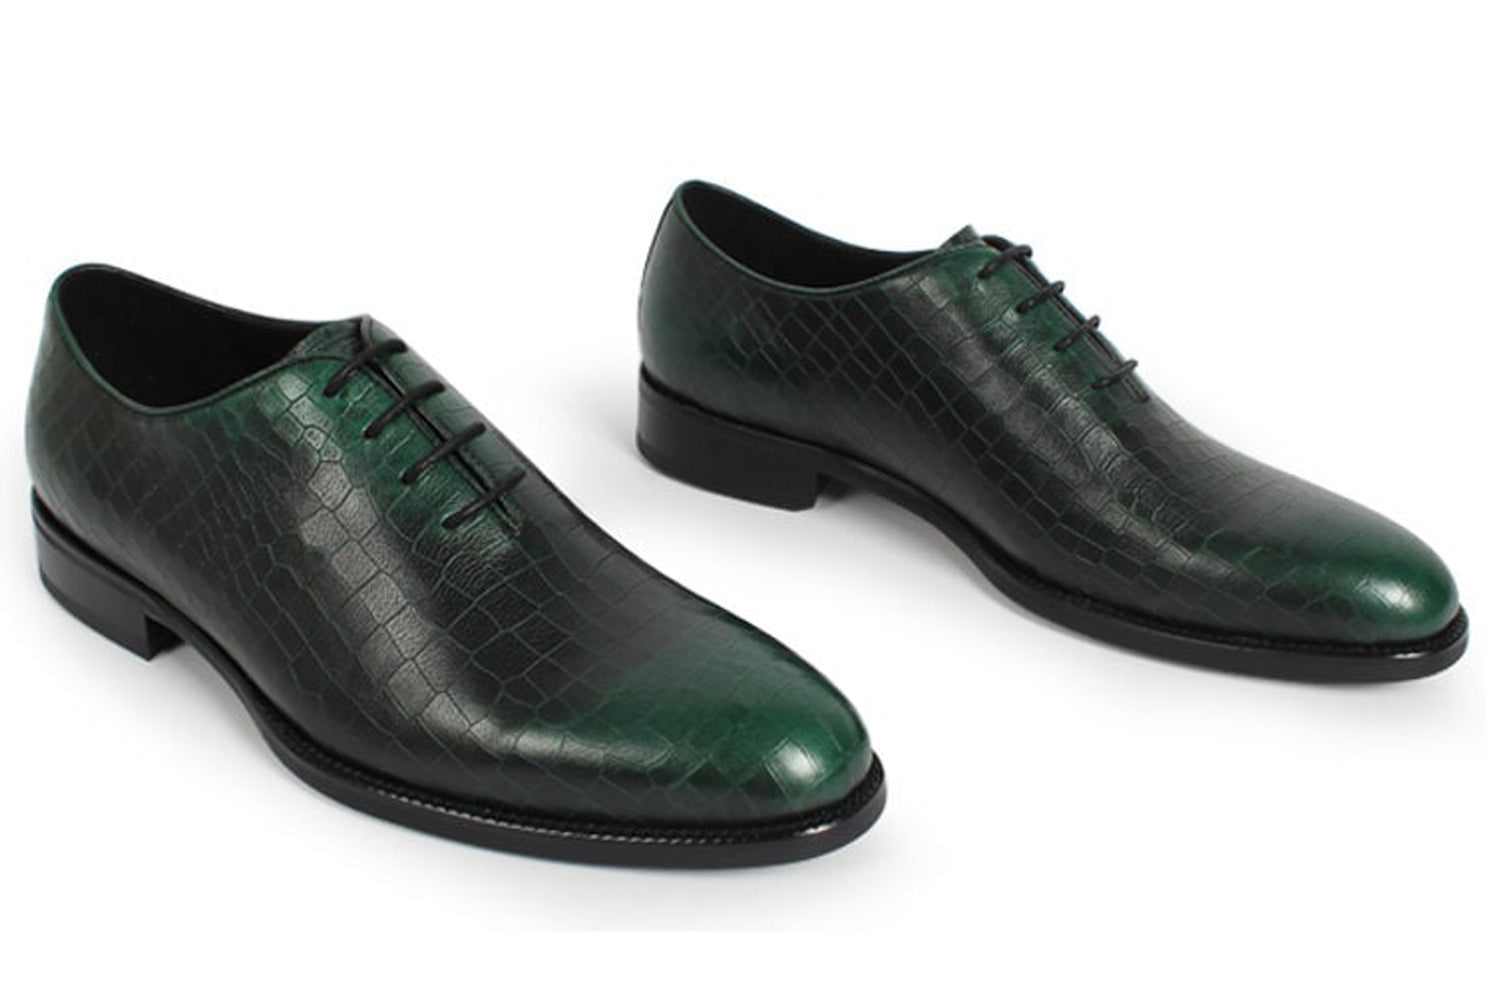 Green Croco Print Leather Formal Wholecut Oxford Lace Up Shoes for Men. Manmade Comfortable Sole. Customization Available.